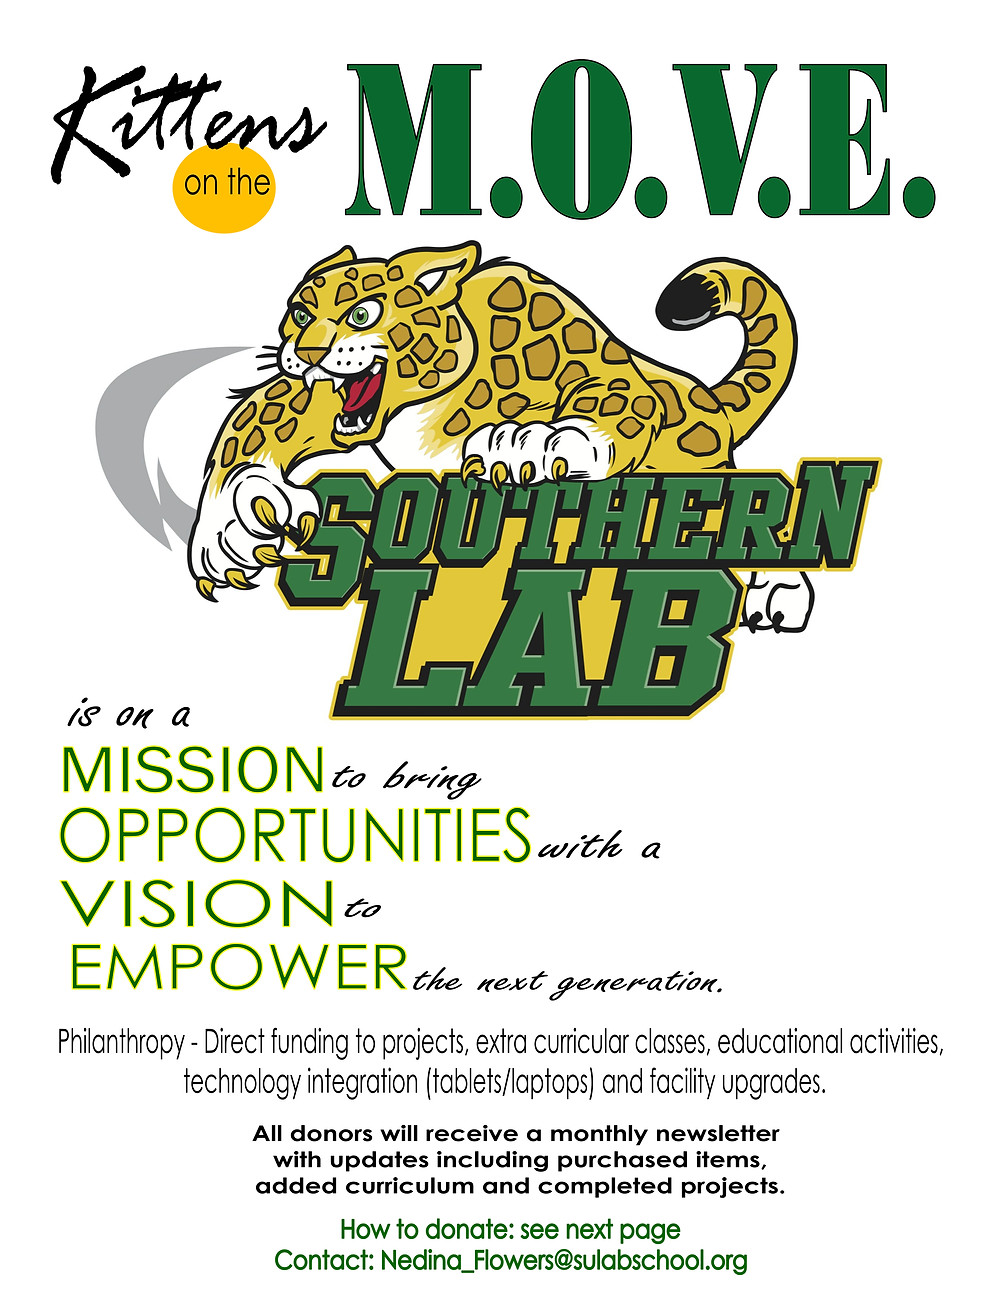 Kittens on the MOVE Campaign flyer-2.jpg